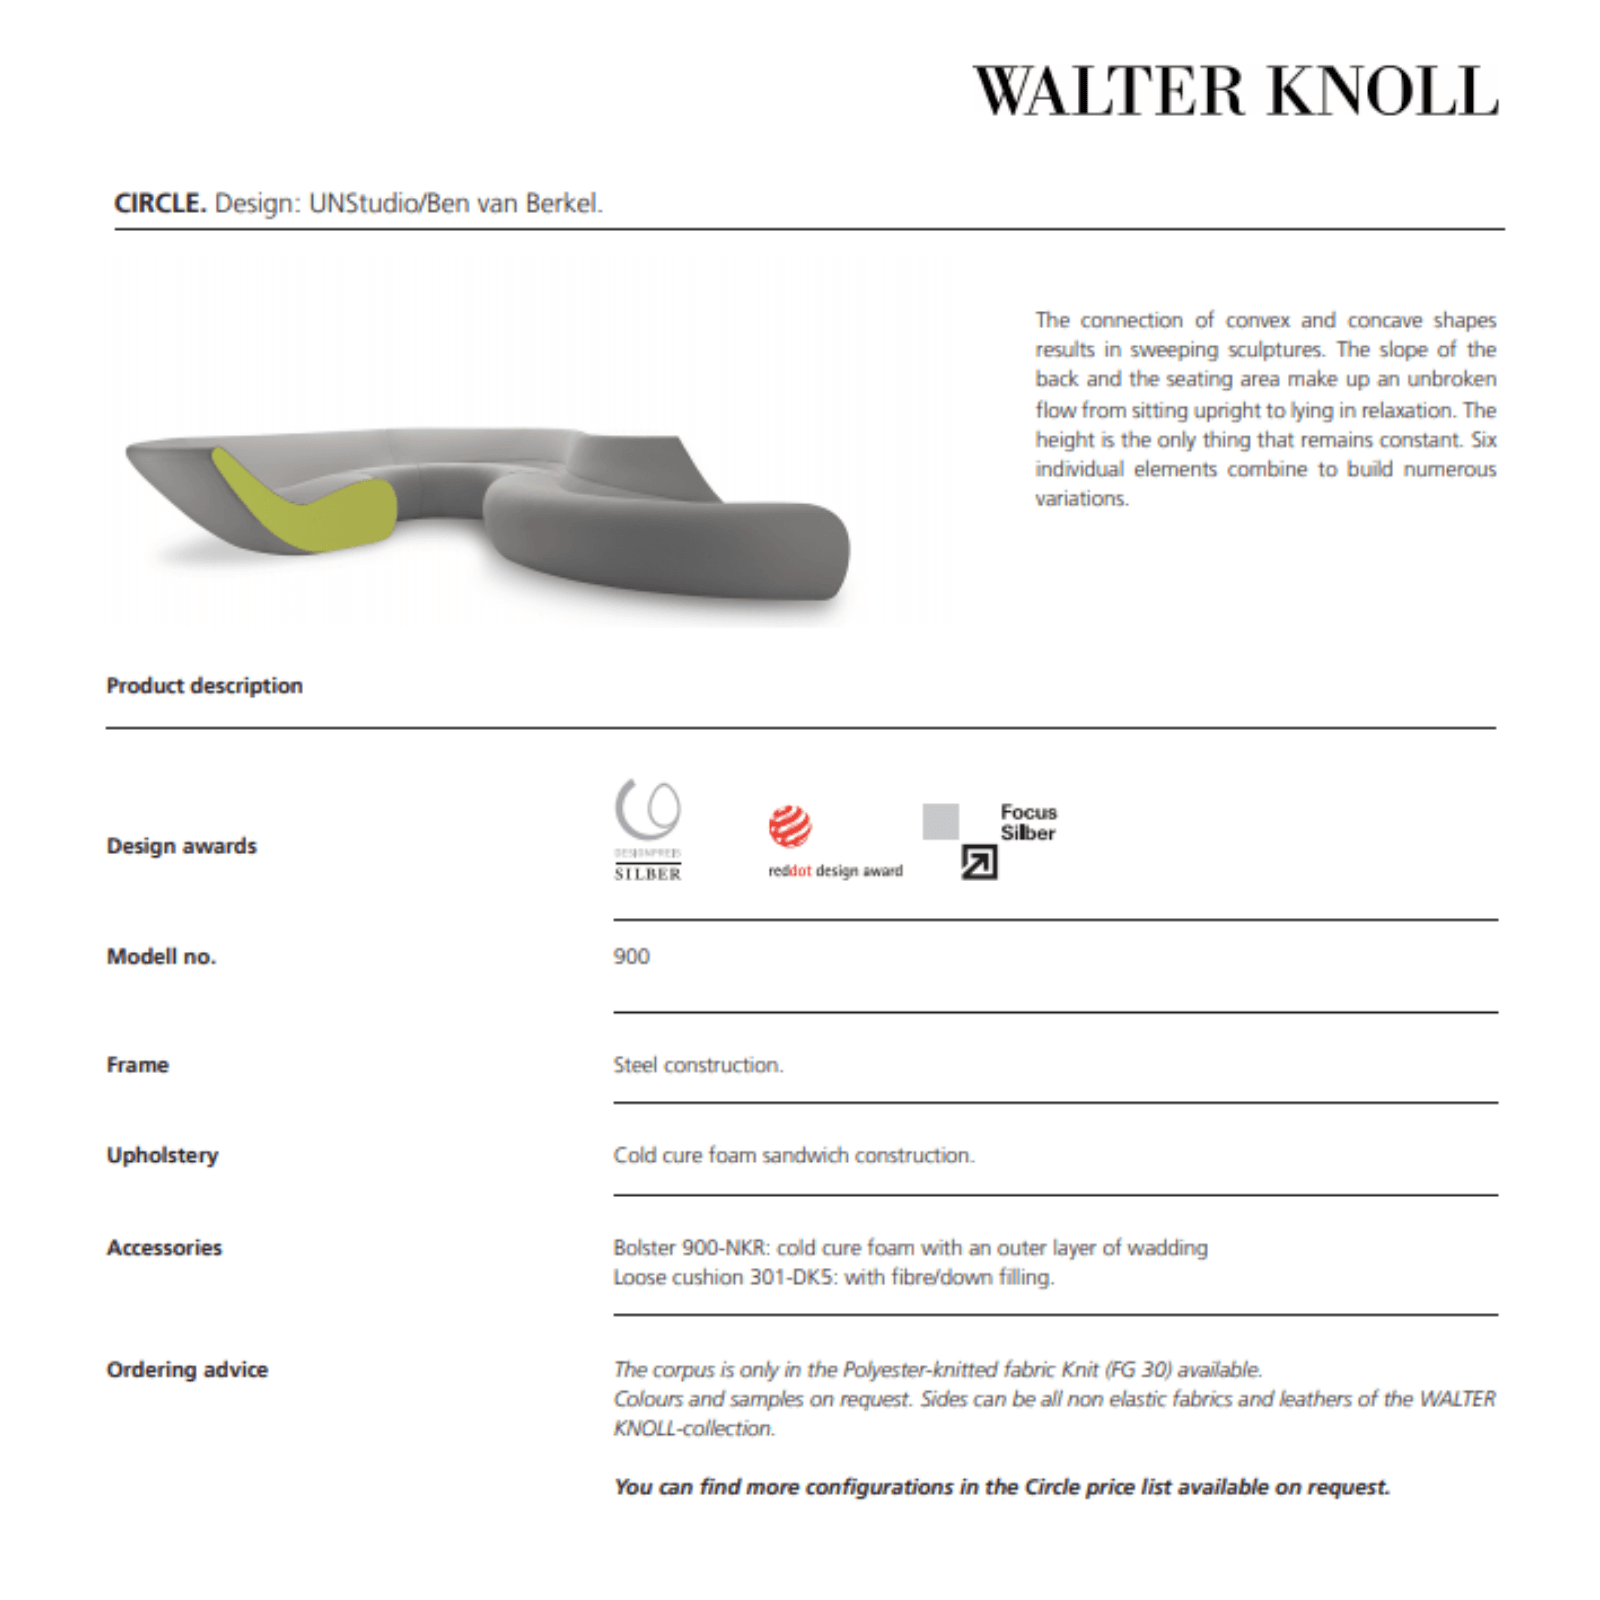 Walter Knoll Circle Sofa technical info